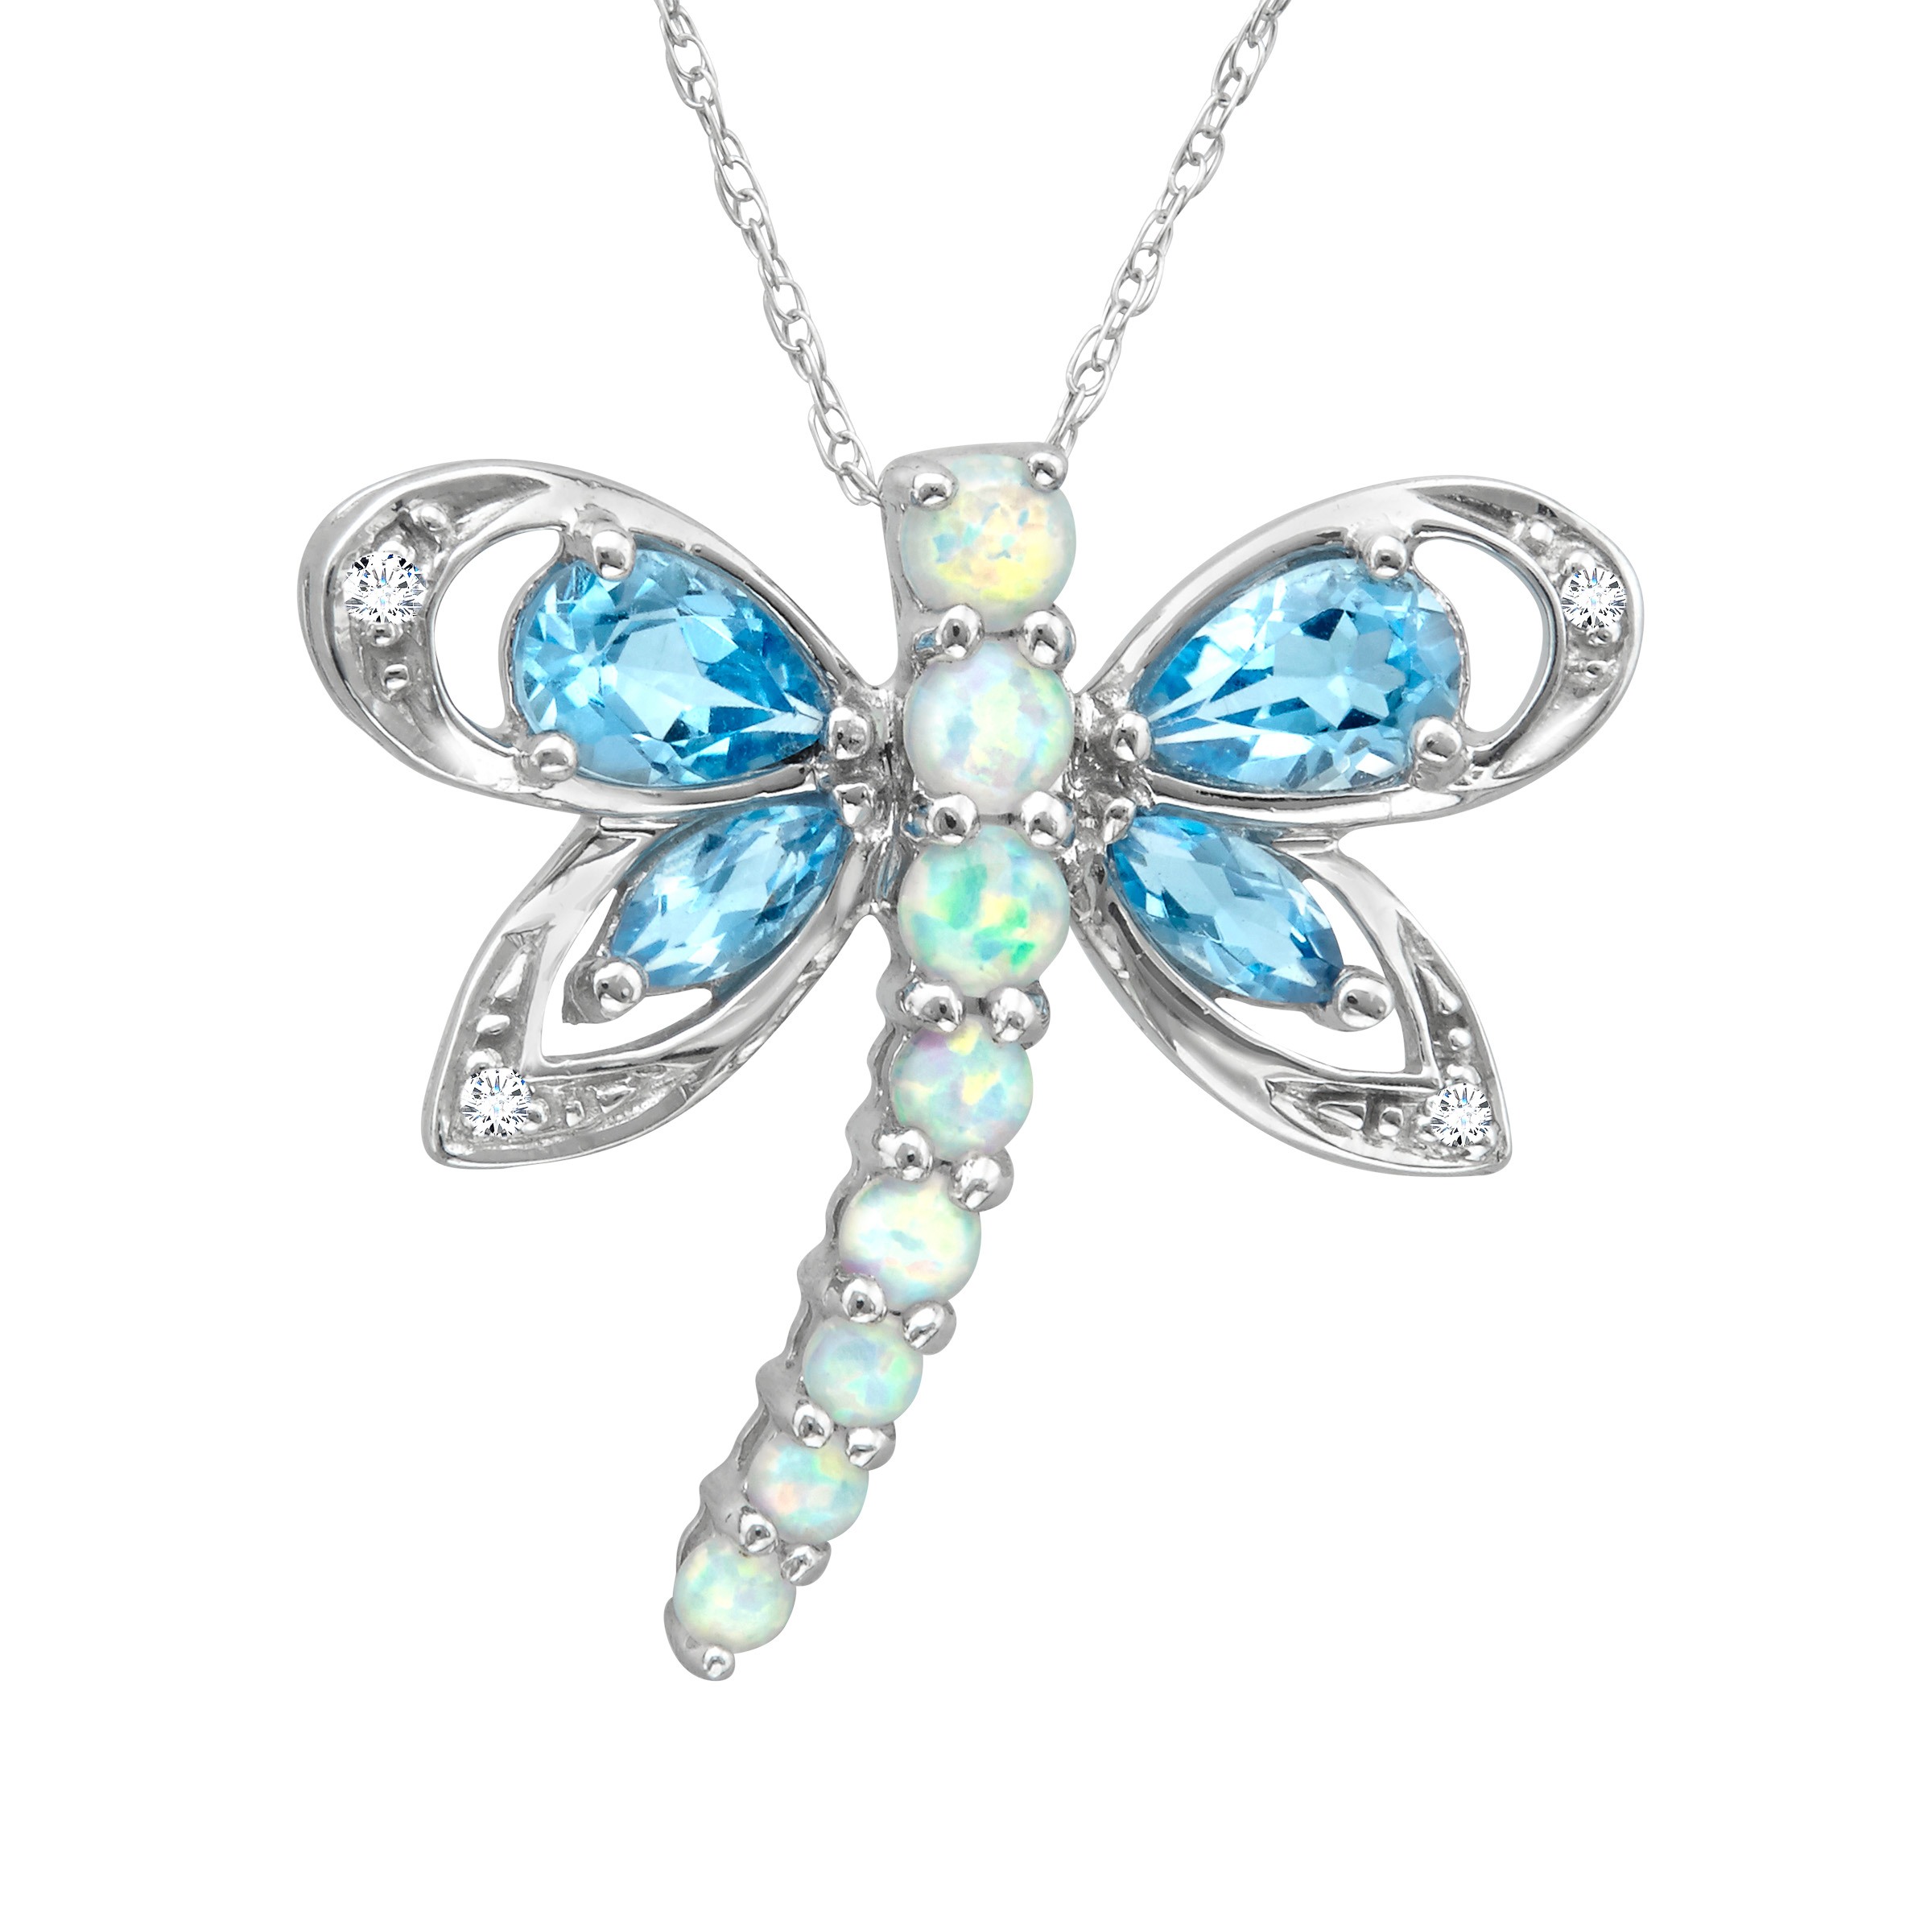 Richline 1 3/4 ct Natural Blue Topaz and Created Opal Dra...